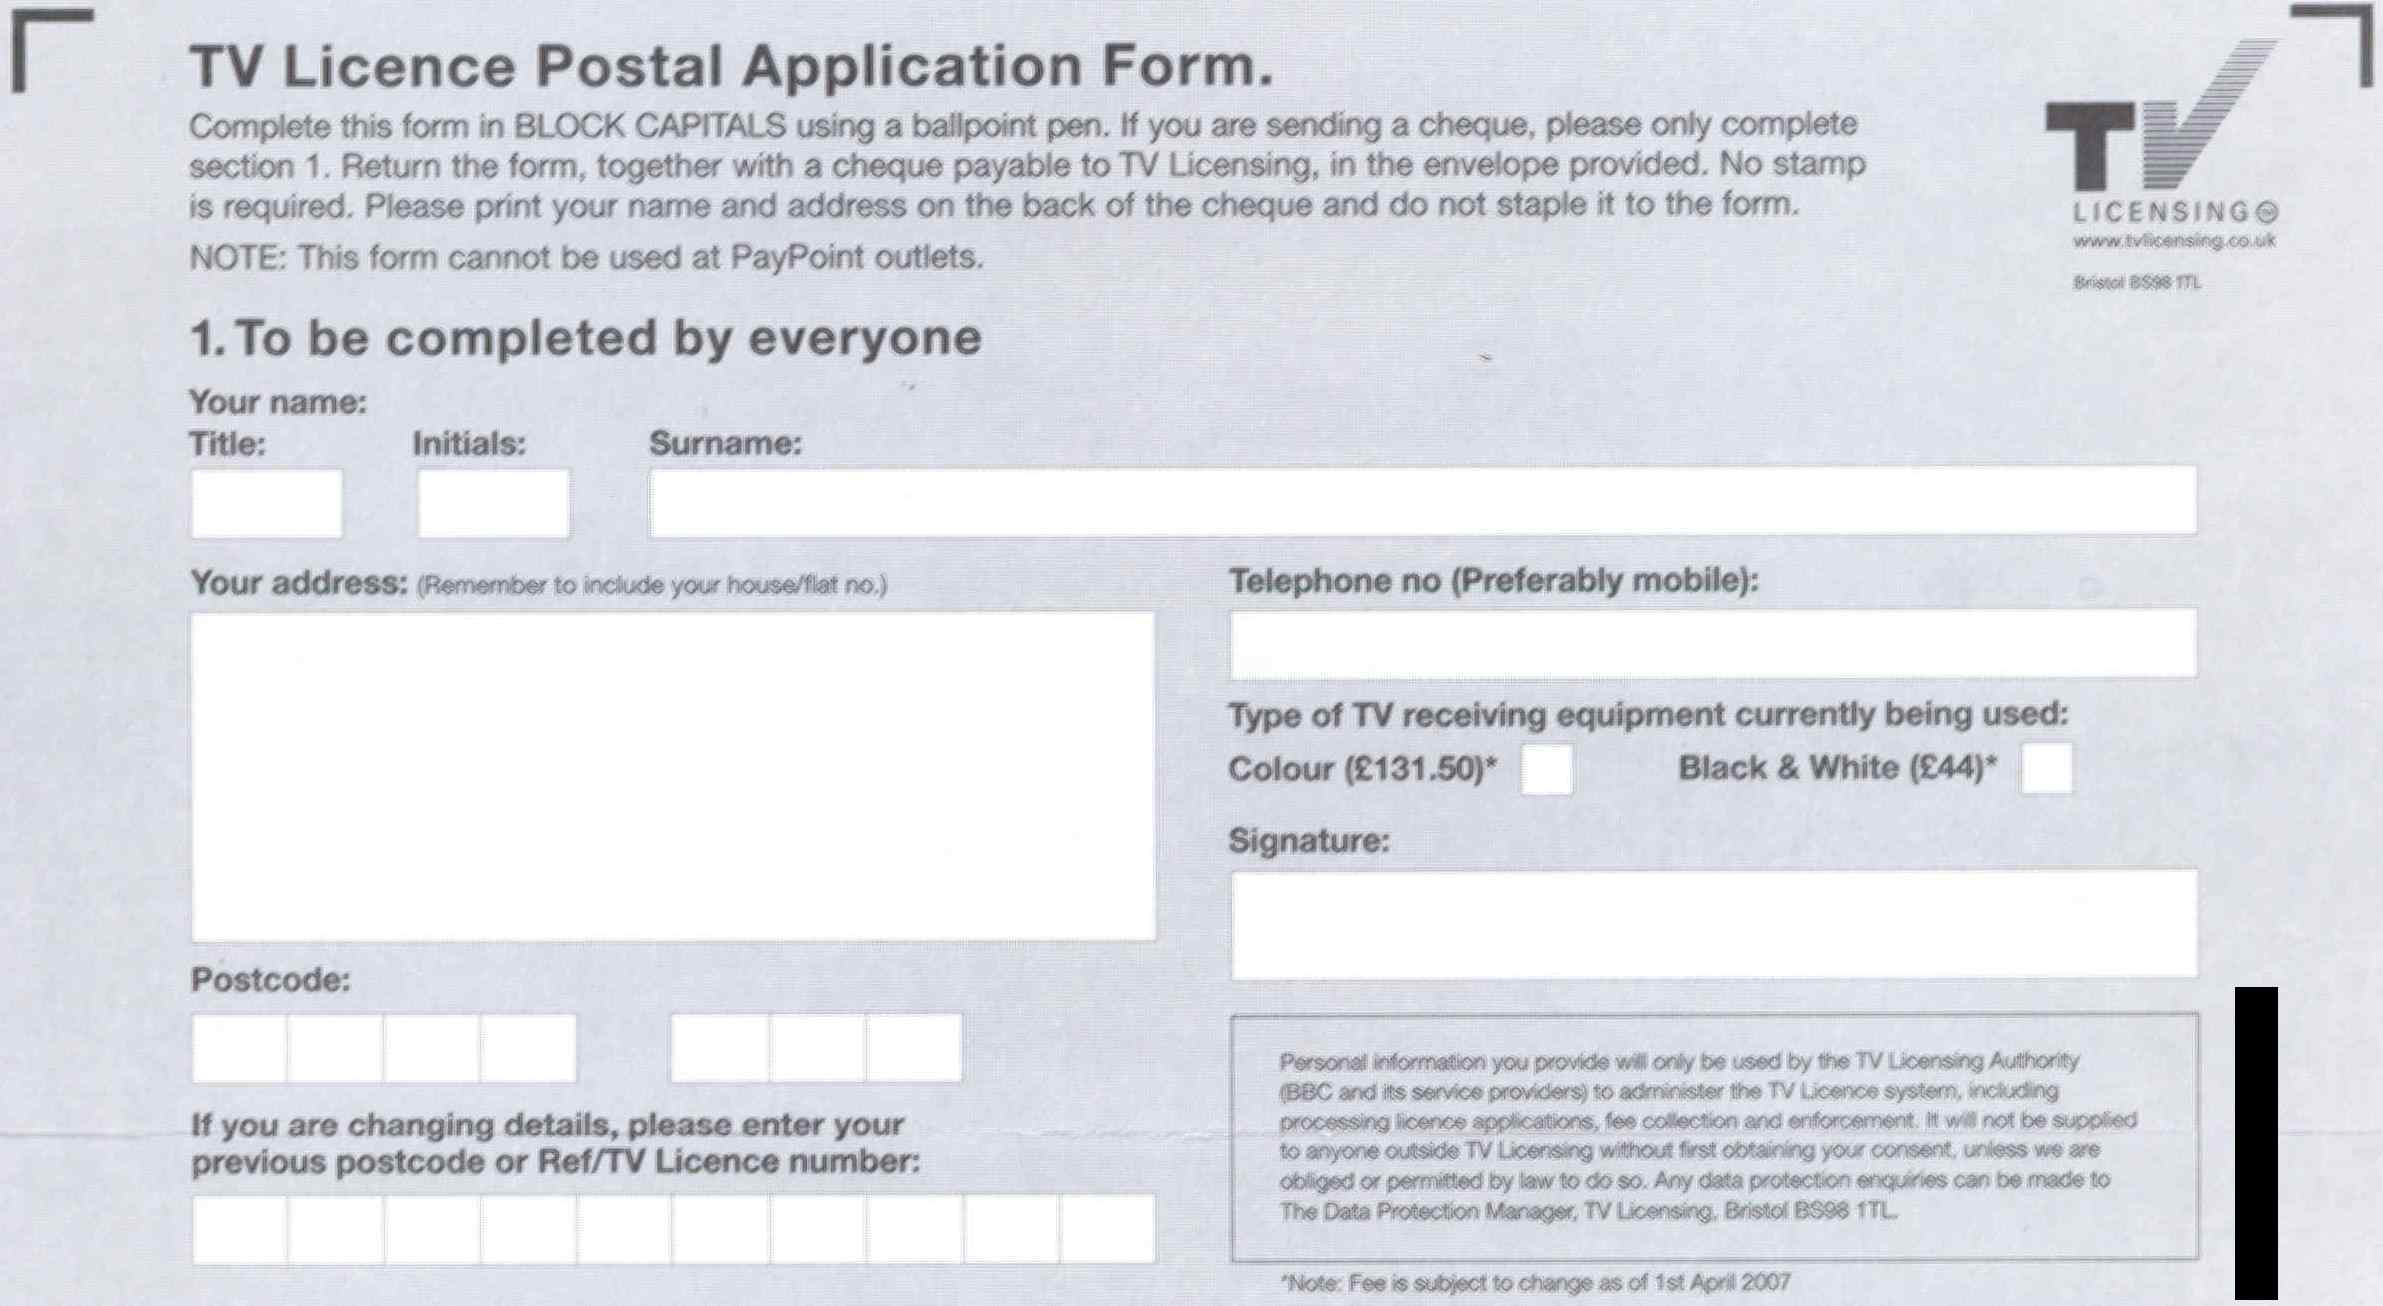 TV Licence application form